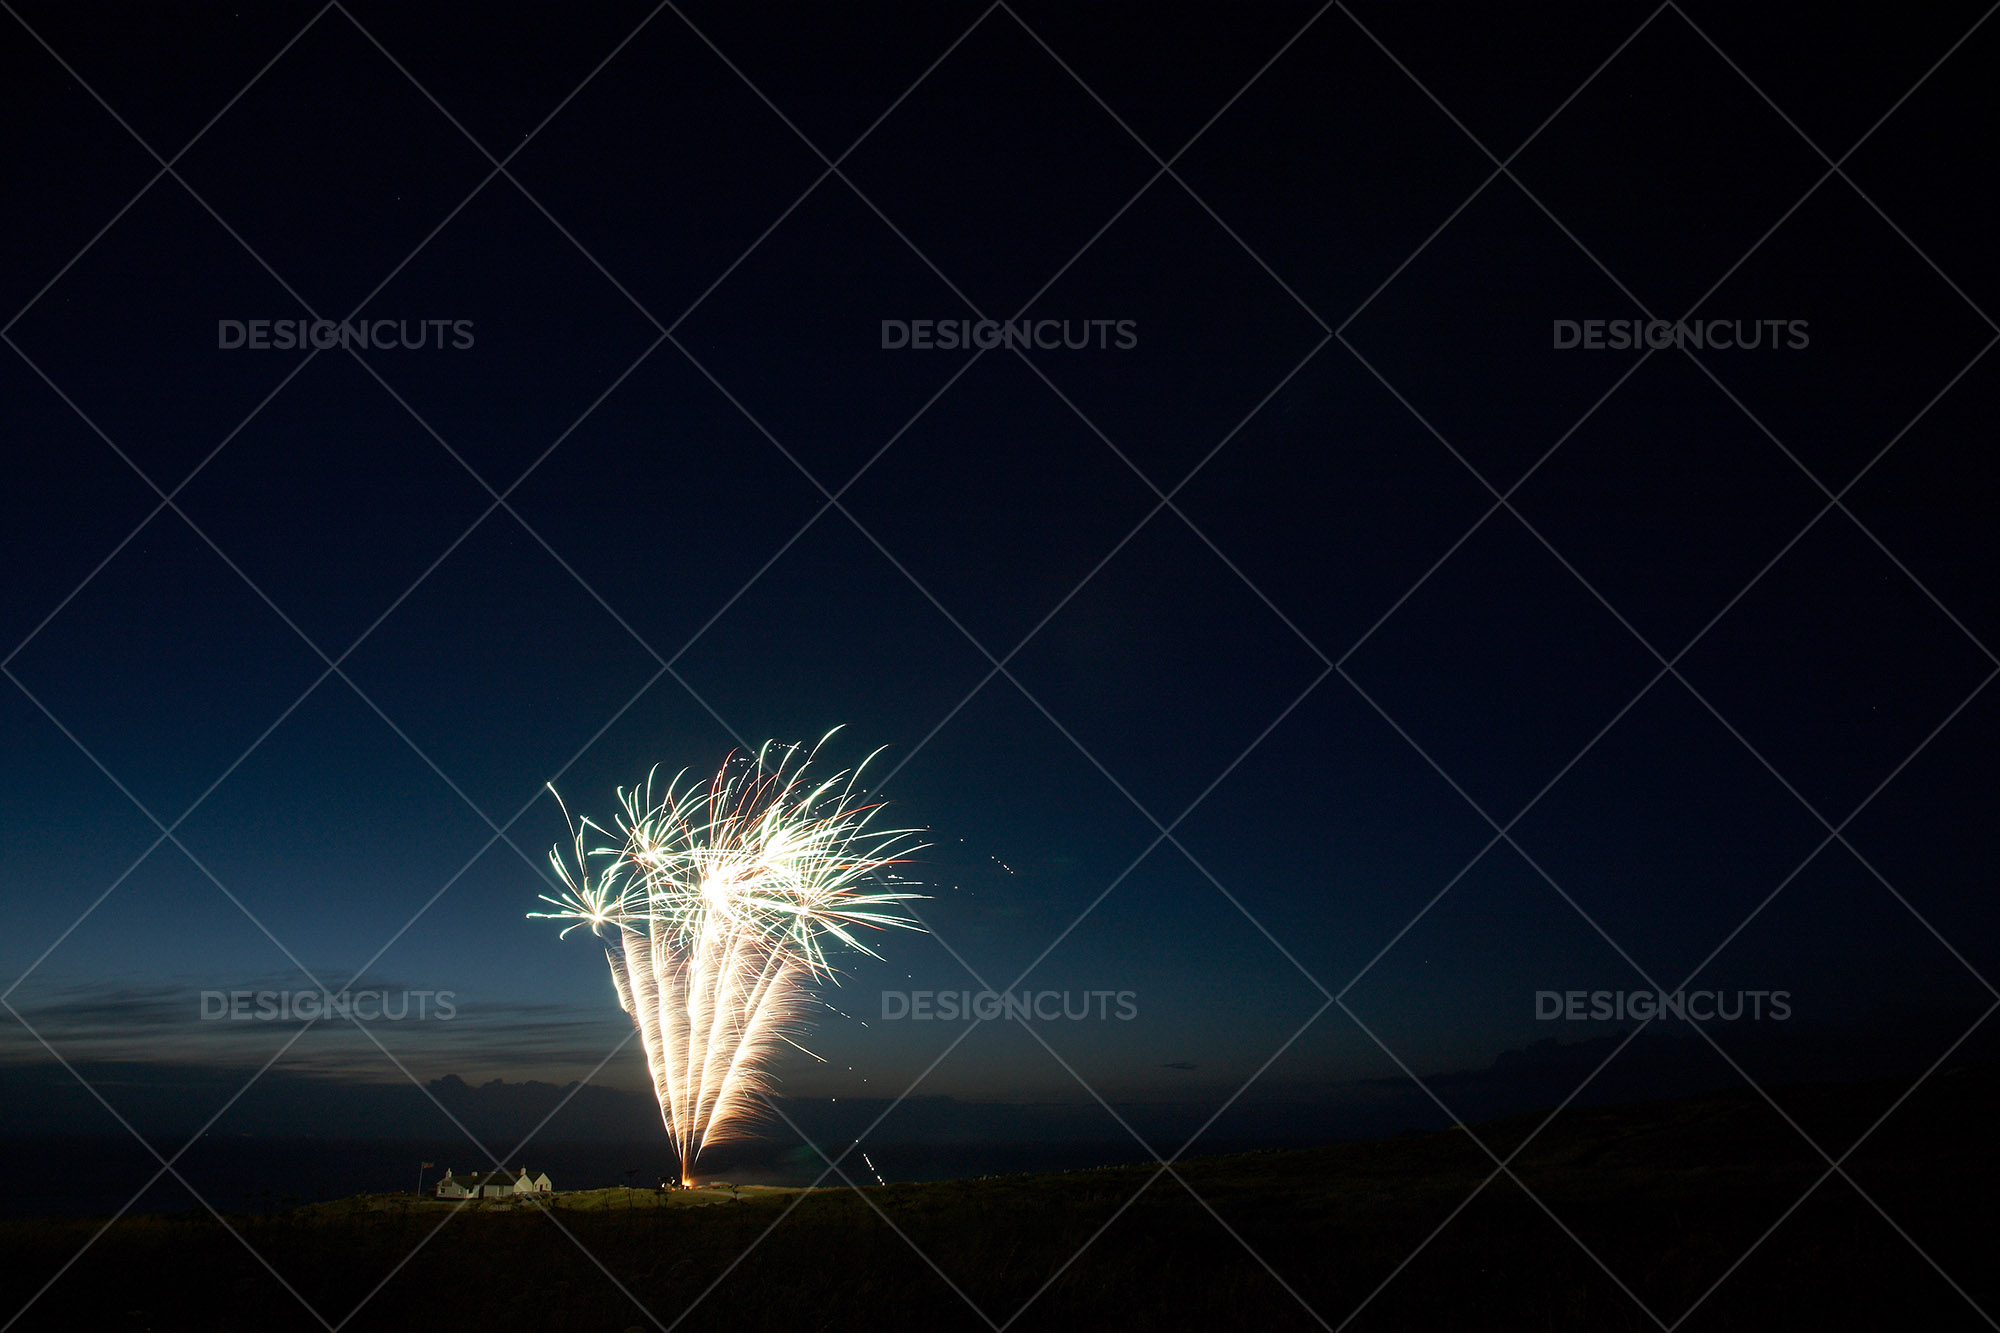 Motion Blurred Fireworks Light Up Night Sky 4